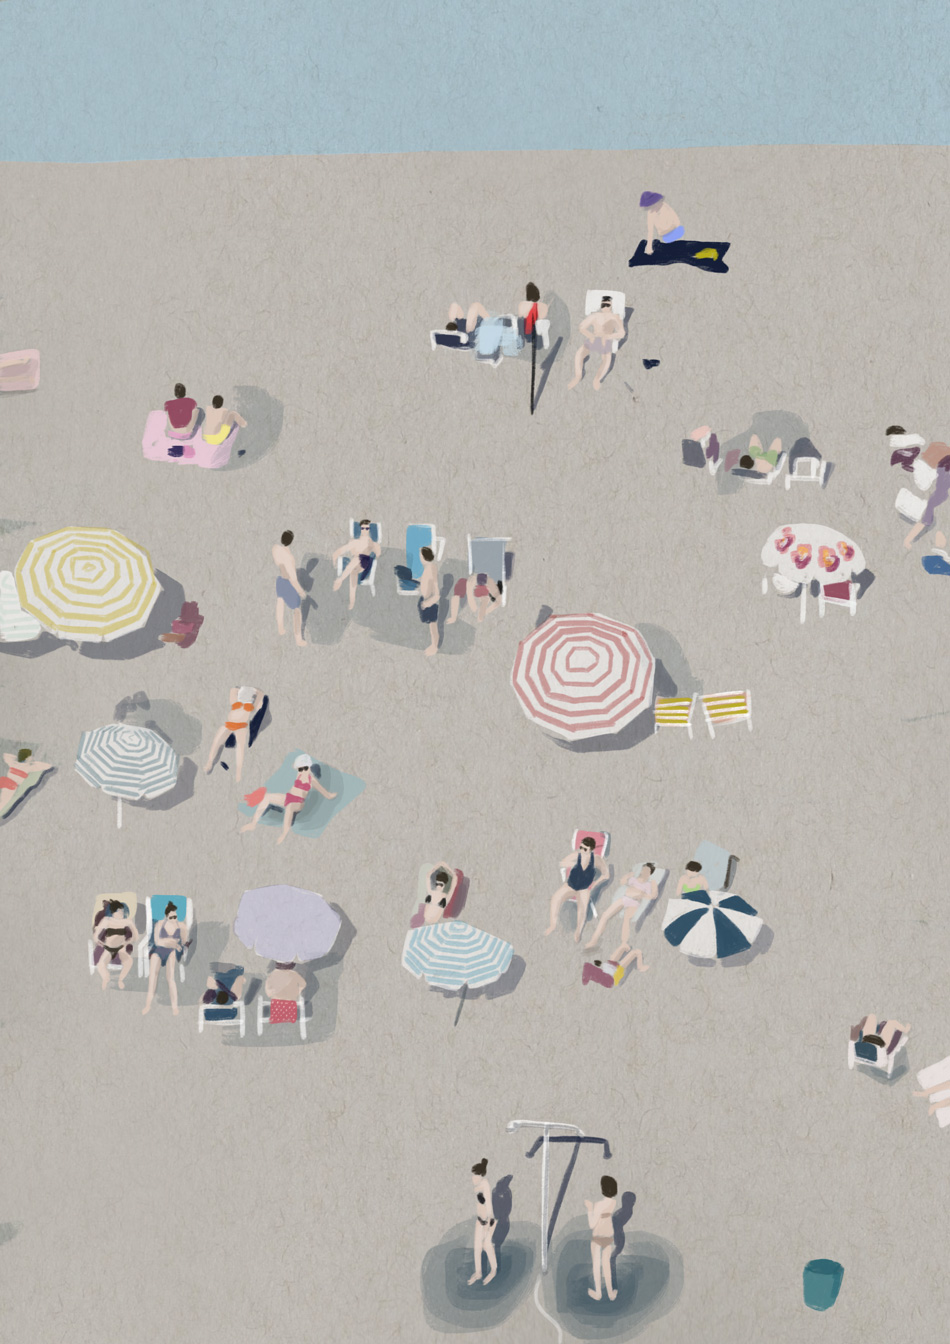 Life's-A-Beach-by-Paola-van-der-Hulst